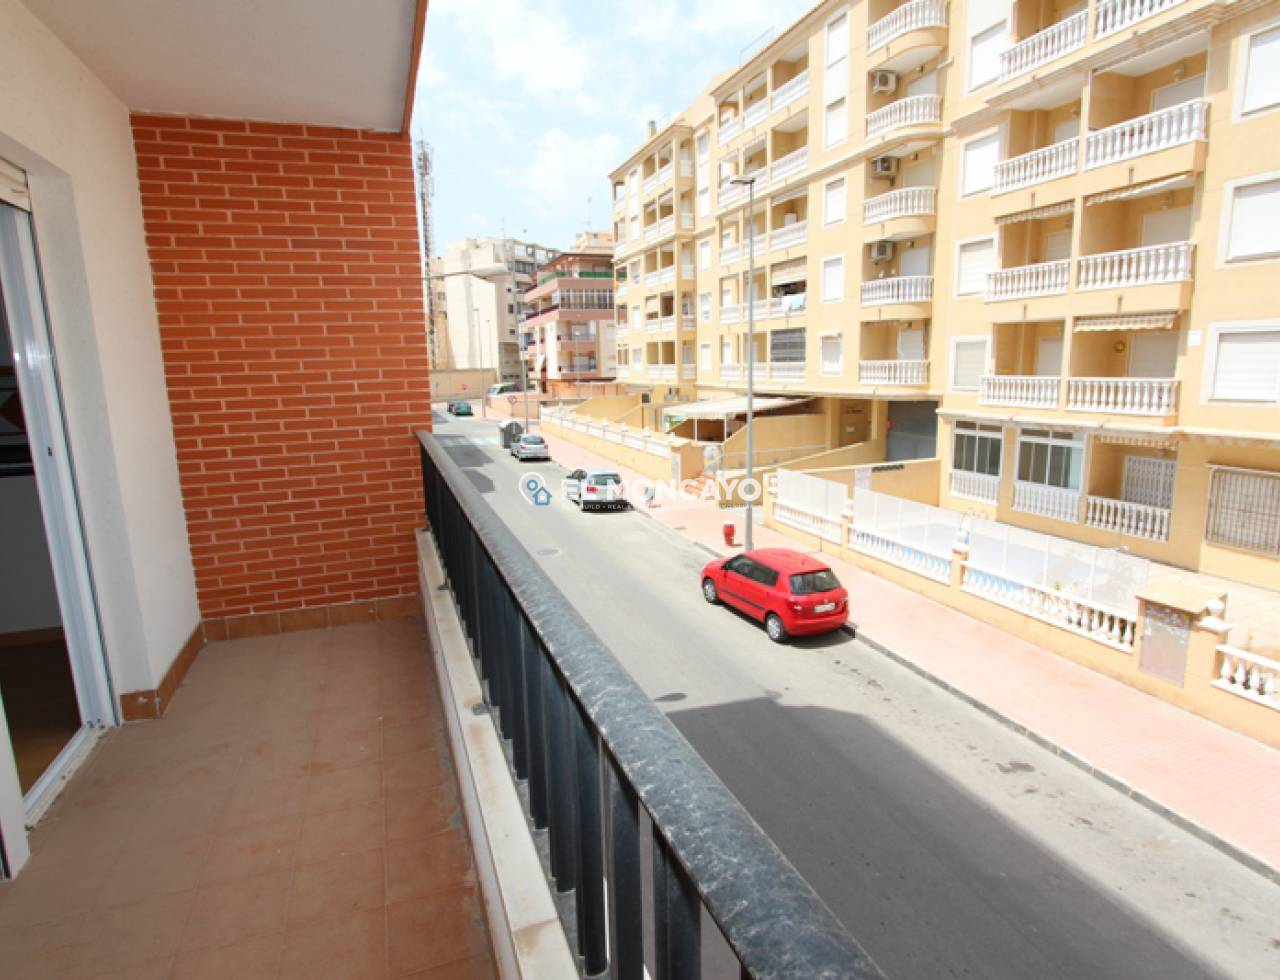 Apartment 3 bedrooms new construction in Guardamar del Segura (Costa Blanca) (15)